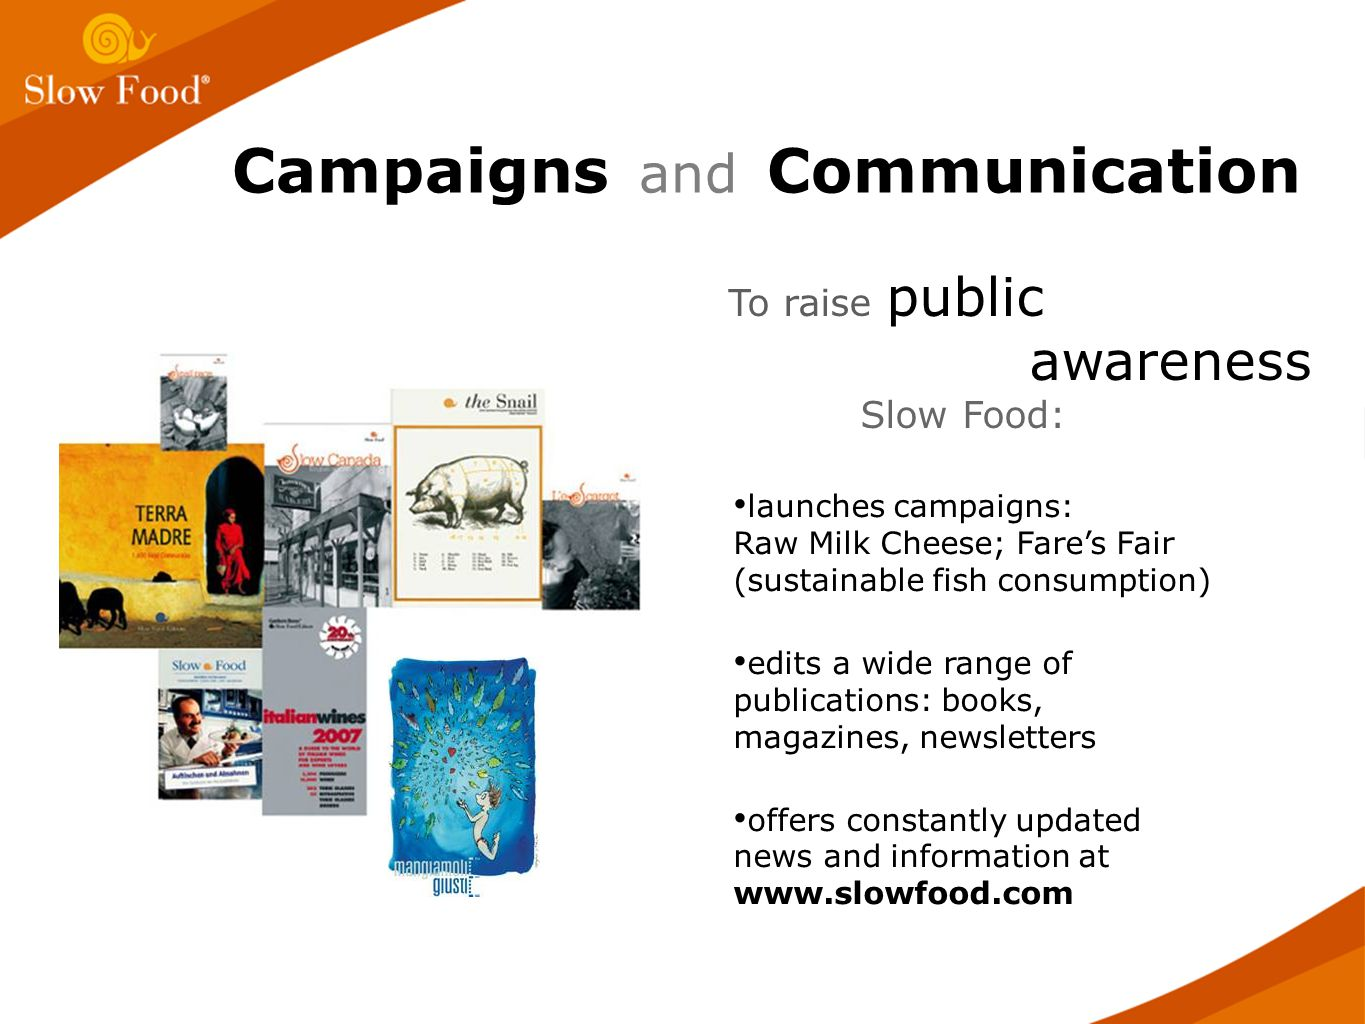 Campaigns and Communication launches campaigns: Raw Milk Cheese; Fare's Fair (sustainable fish consumption) edits a wide range of publications: books, magazines, newsletters offers constantly updated news and information at   To raise public awareness Slow Food: